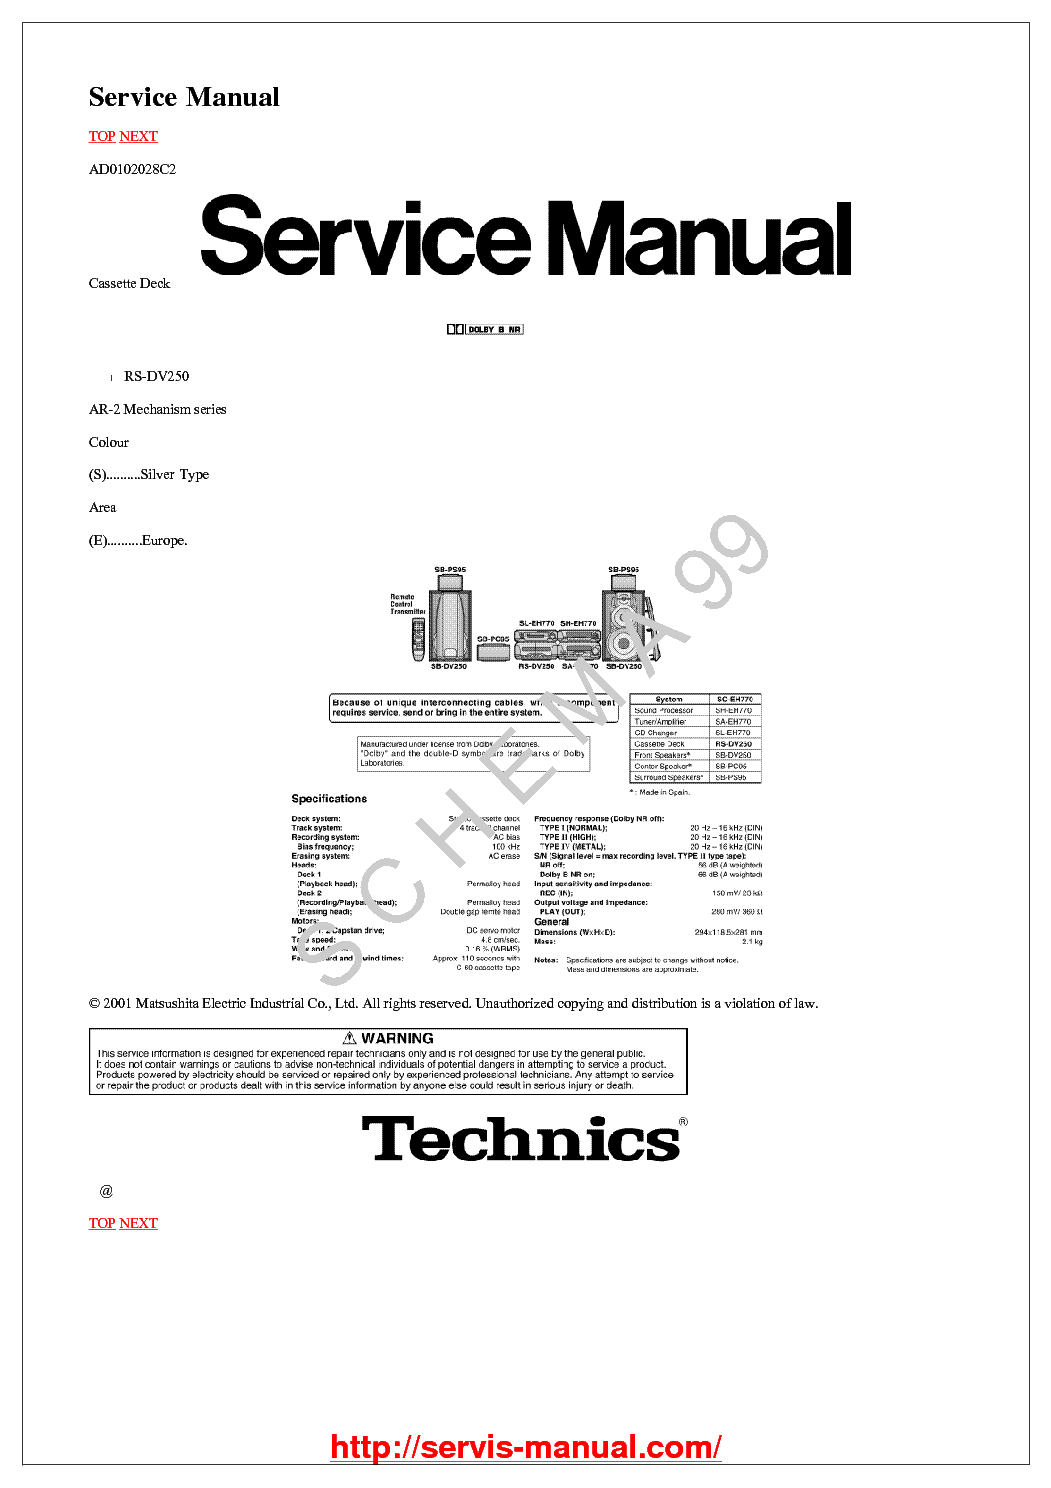 TECHNICS EROSITO SU-CH900 Service Manual free download